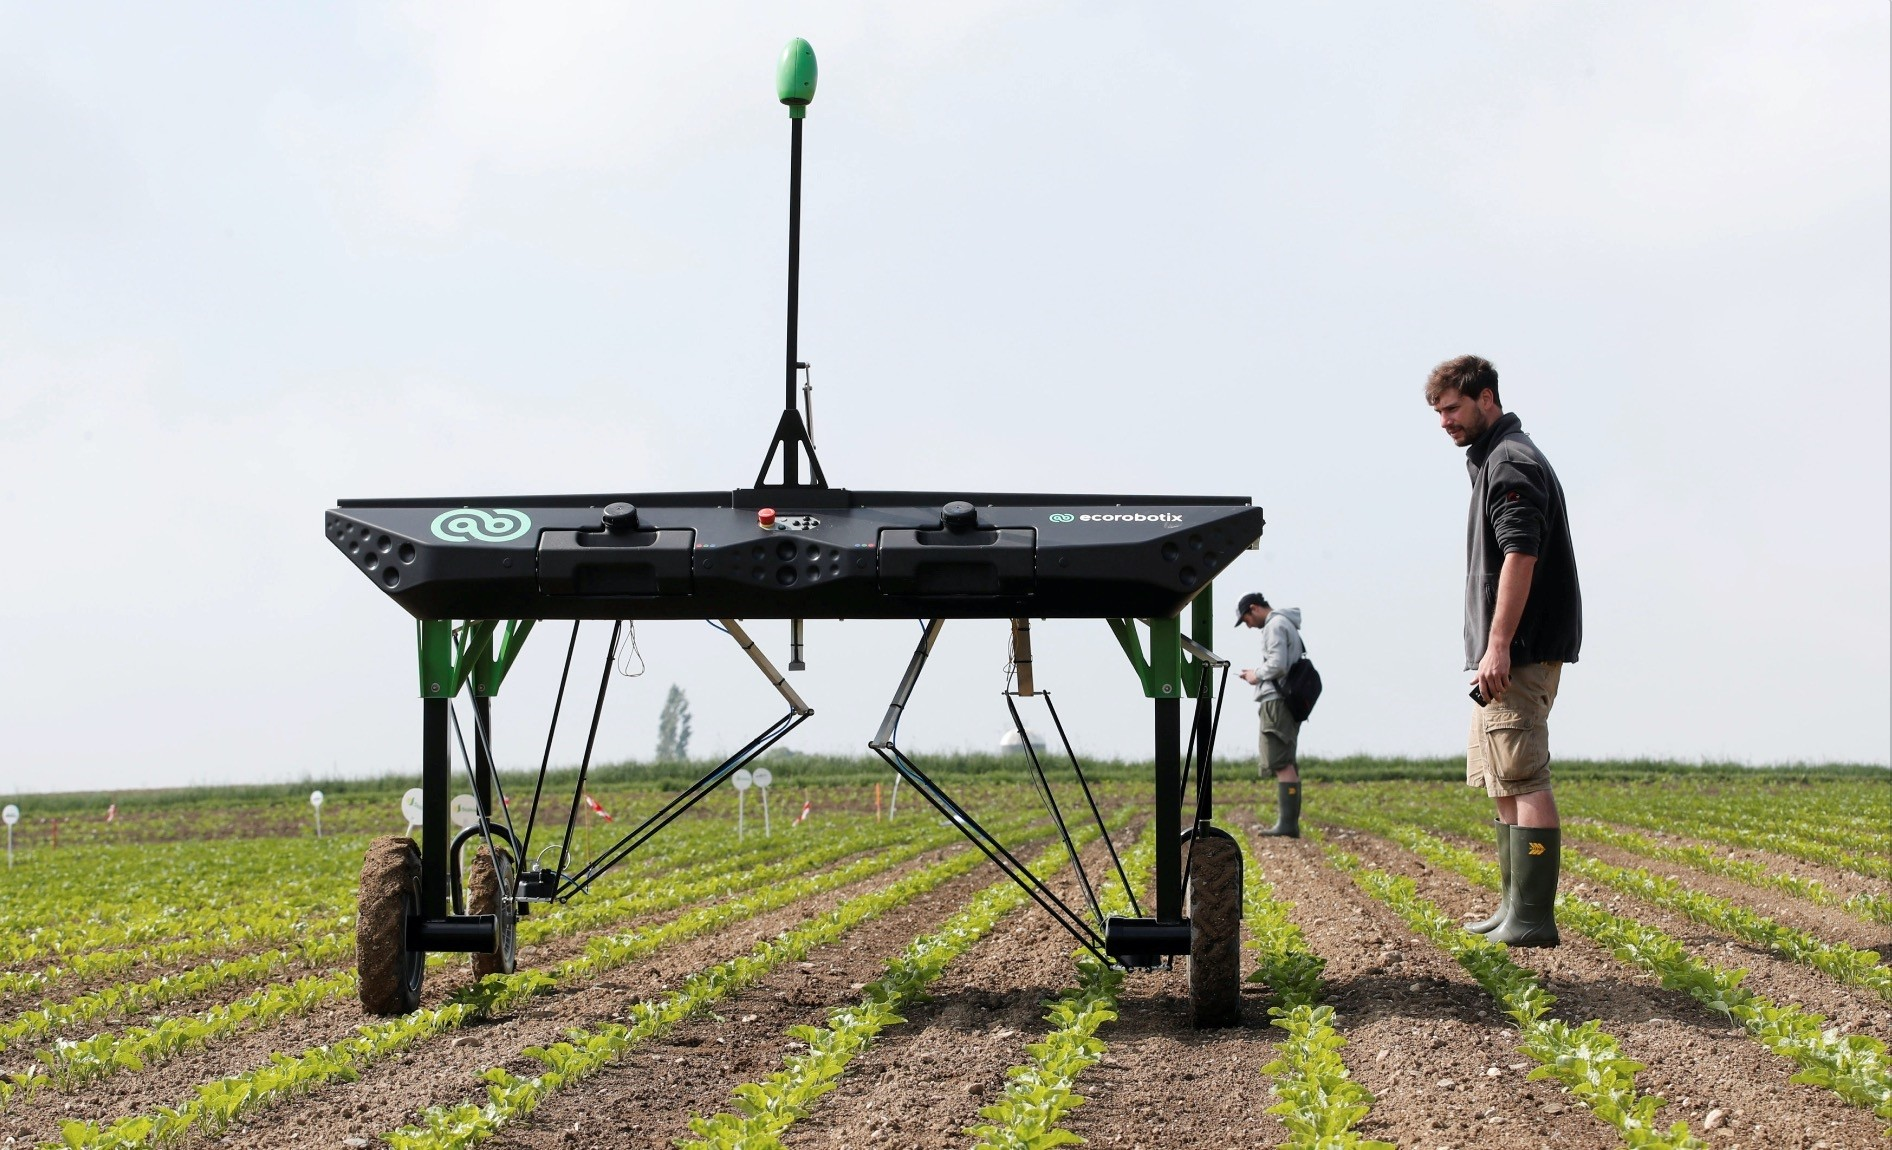 The prototype of an autonomous weeding machine by Swiss start-up ecoRobotix is pictured during tests on a sugar beet field near Bavois, Switzerland.